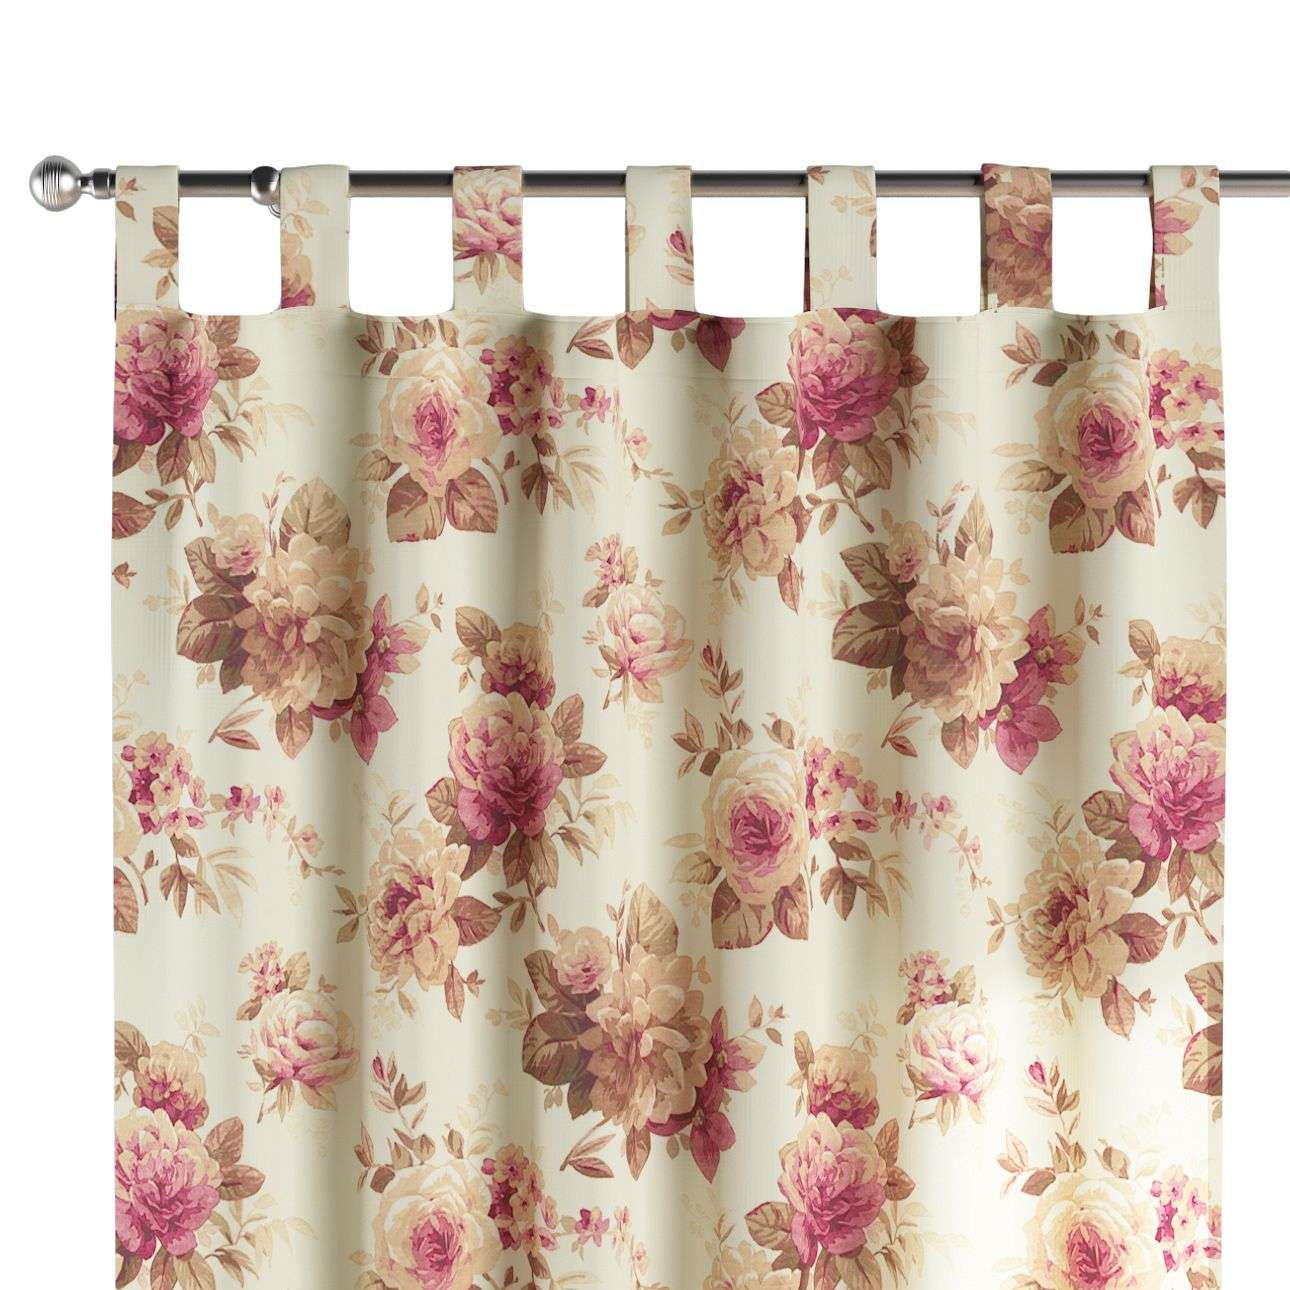 Tab top curtains in collection Mirella, fabric: 141-06